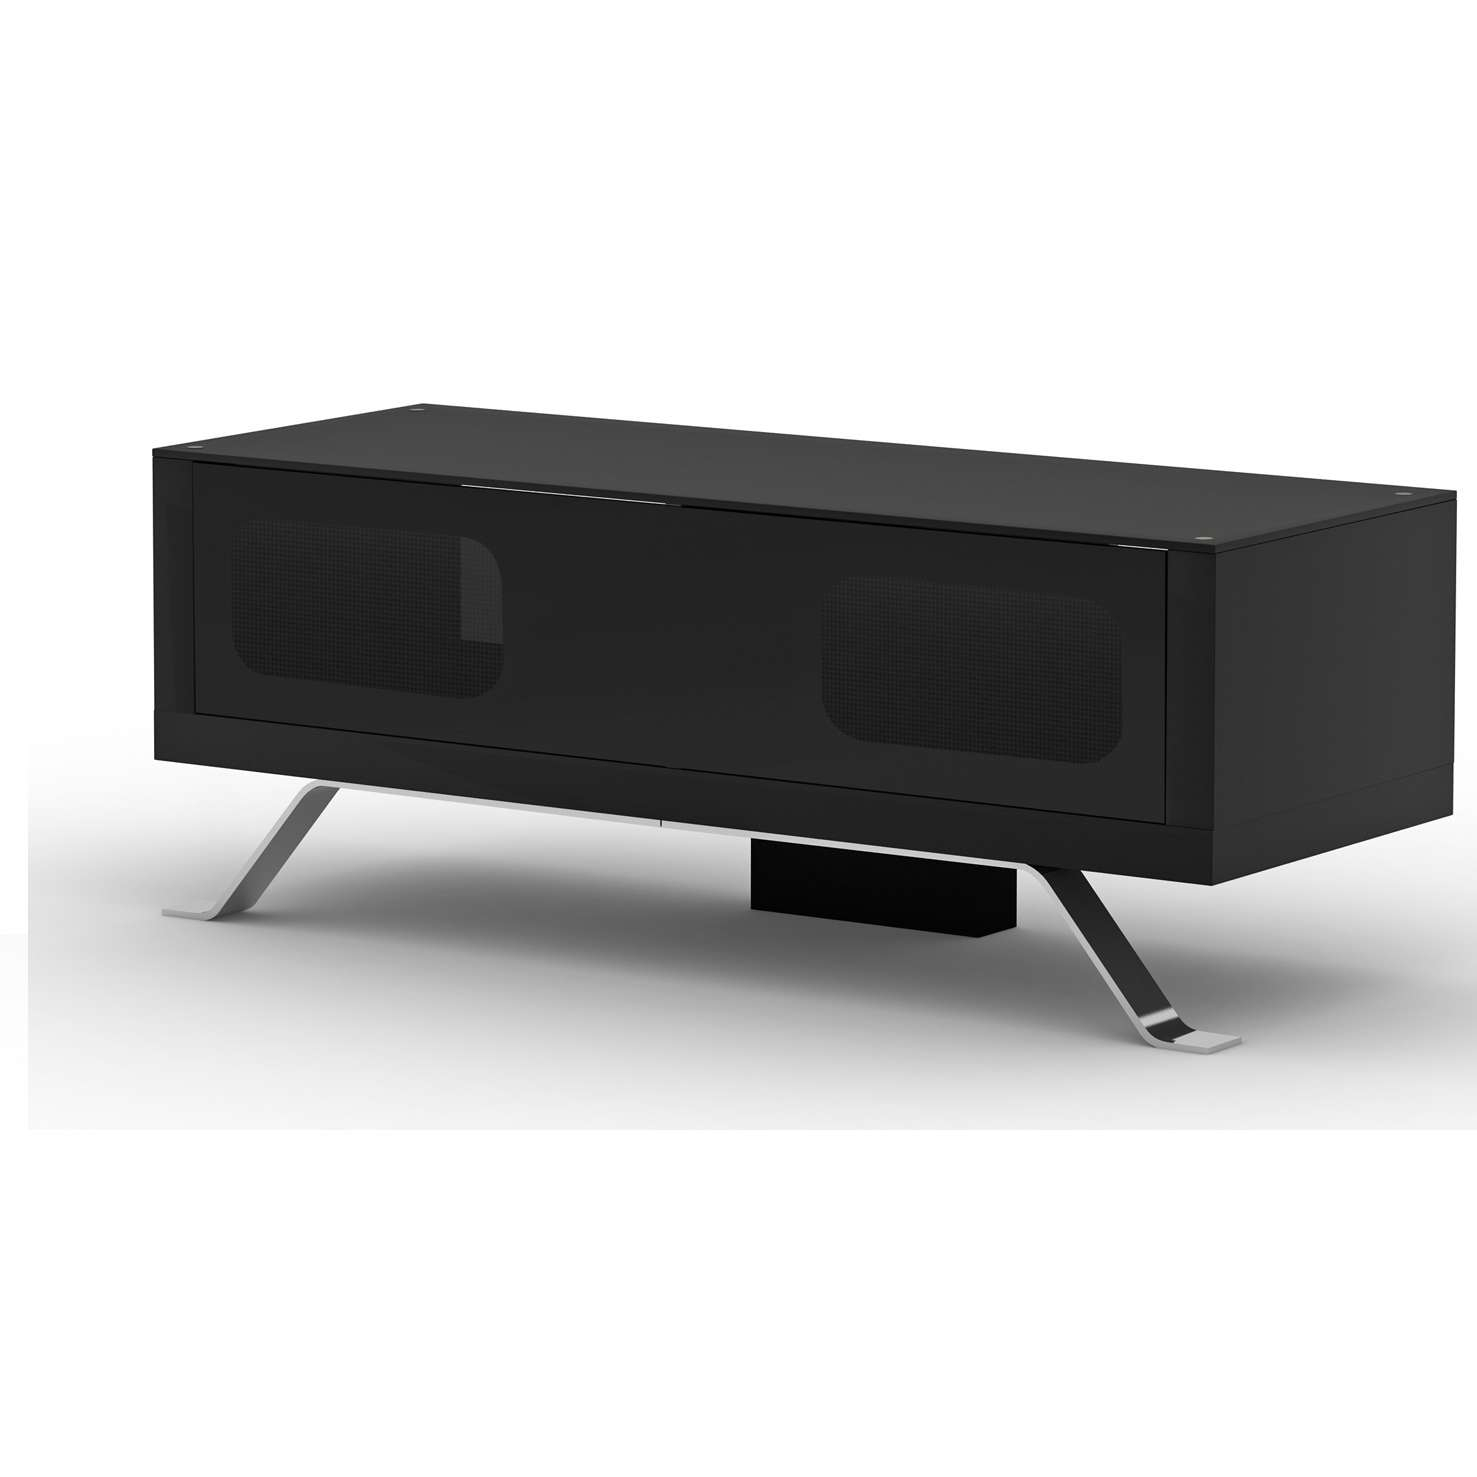 Arcadia Black Tv Cabinet With Glass Top 20518 Furniture In Within Modern Black Tv Stands (View 3 of 20)